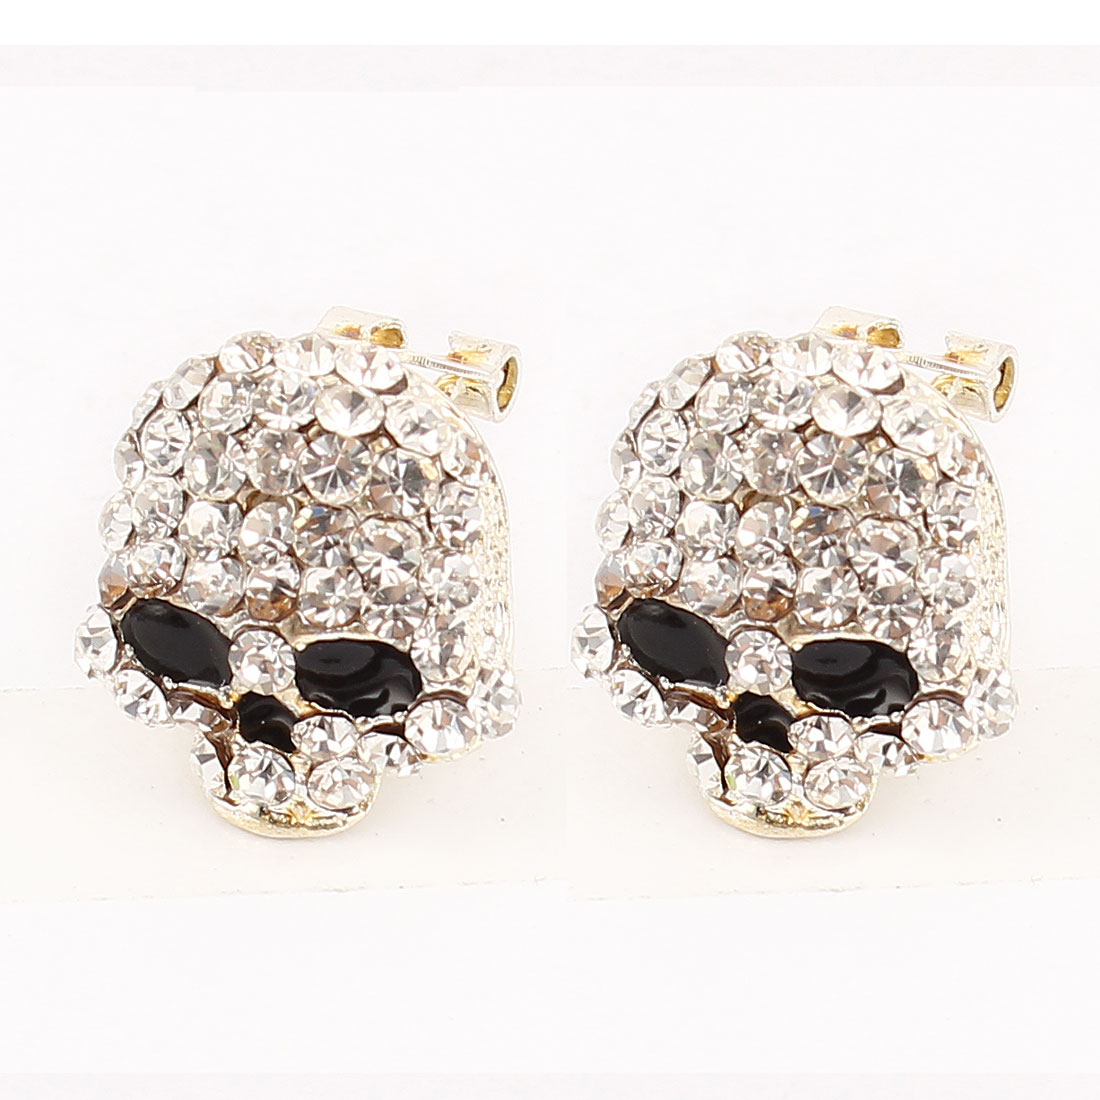 Pair Clear Rhinestone Detailing Skull Shaped Silver Tone Metal French Clip Earrings for Lady